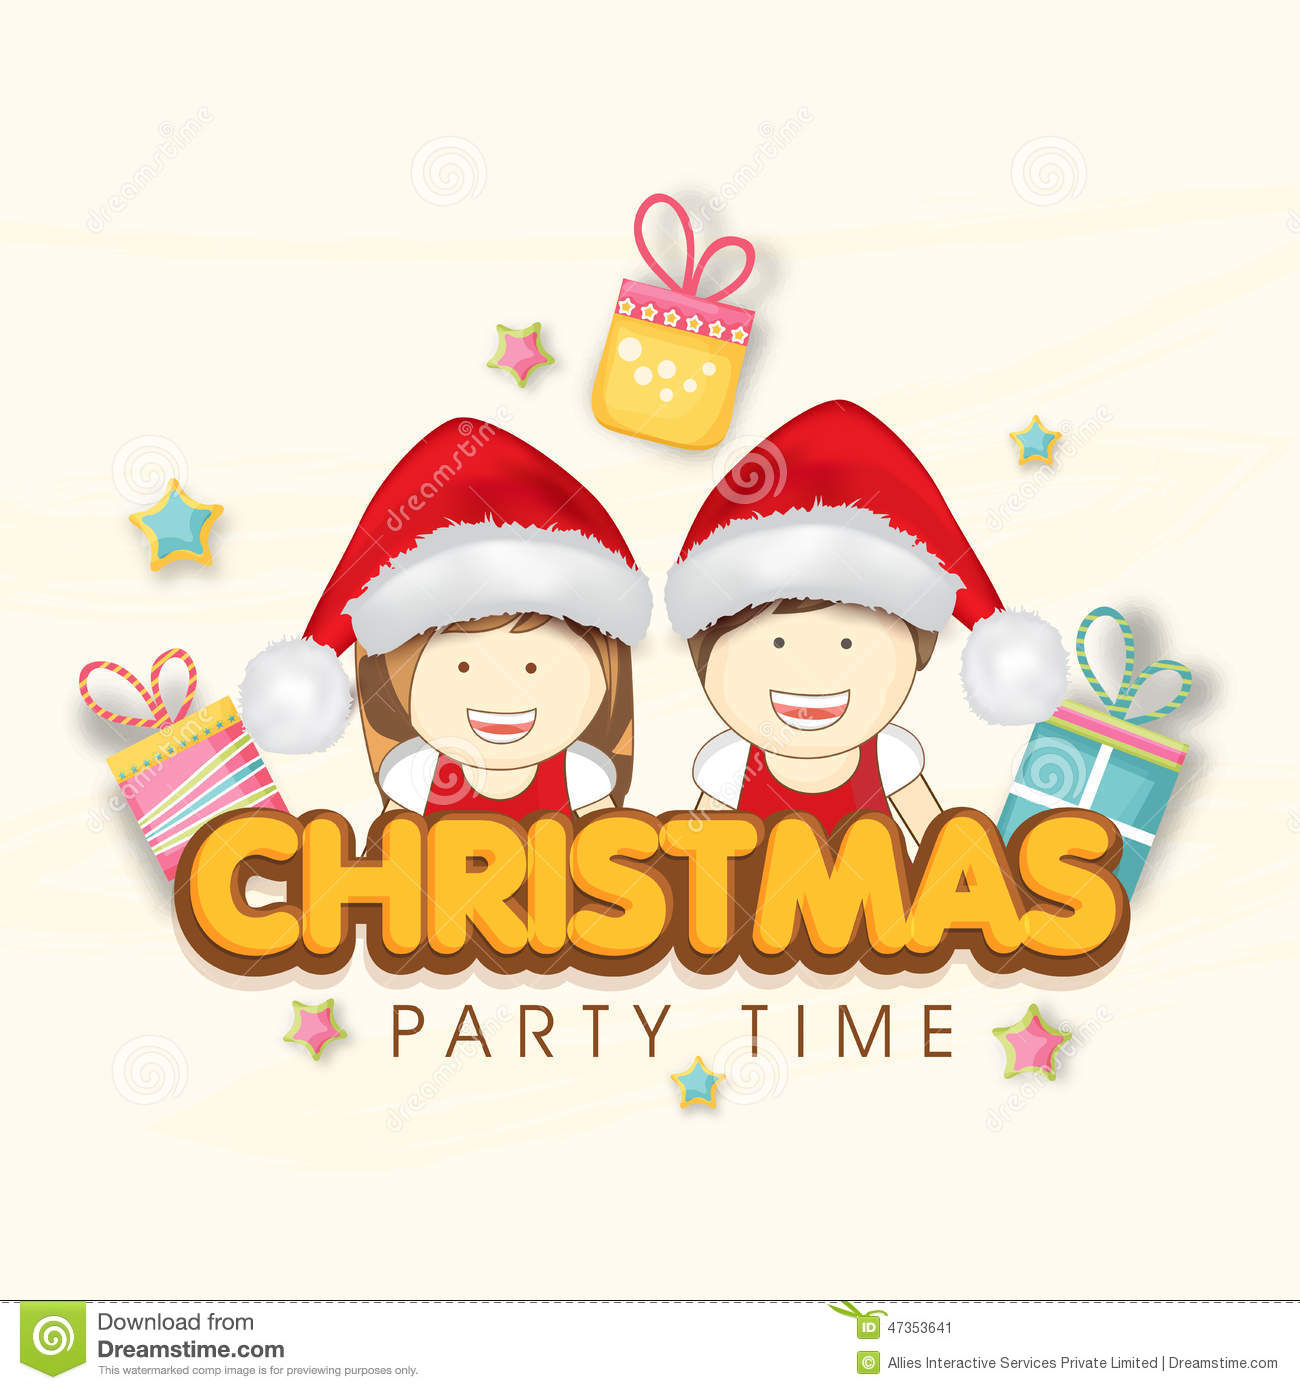 Doc658424 Christmas Party Invitation Cards MS Word Merry – Christmas Party Invitation Card